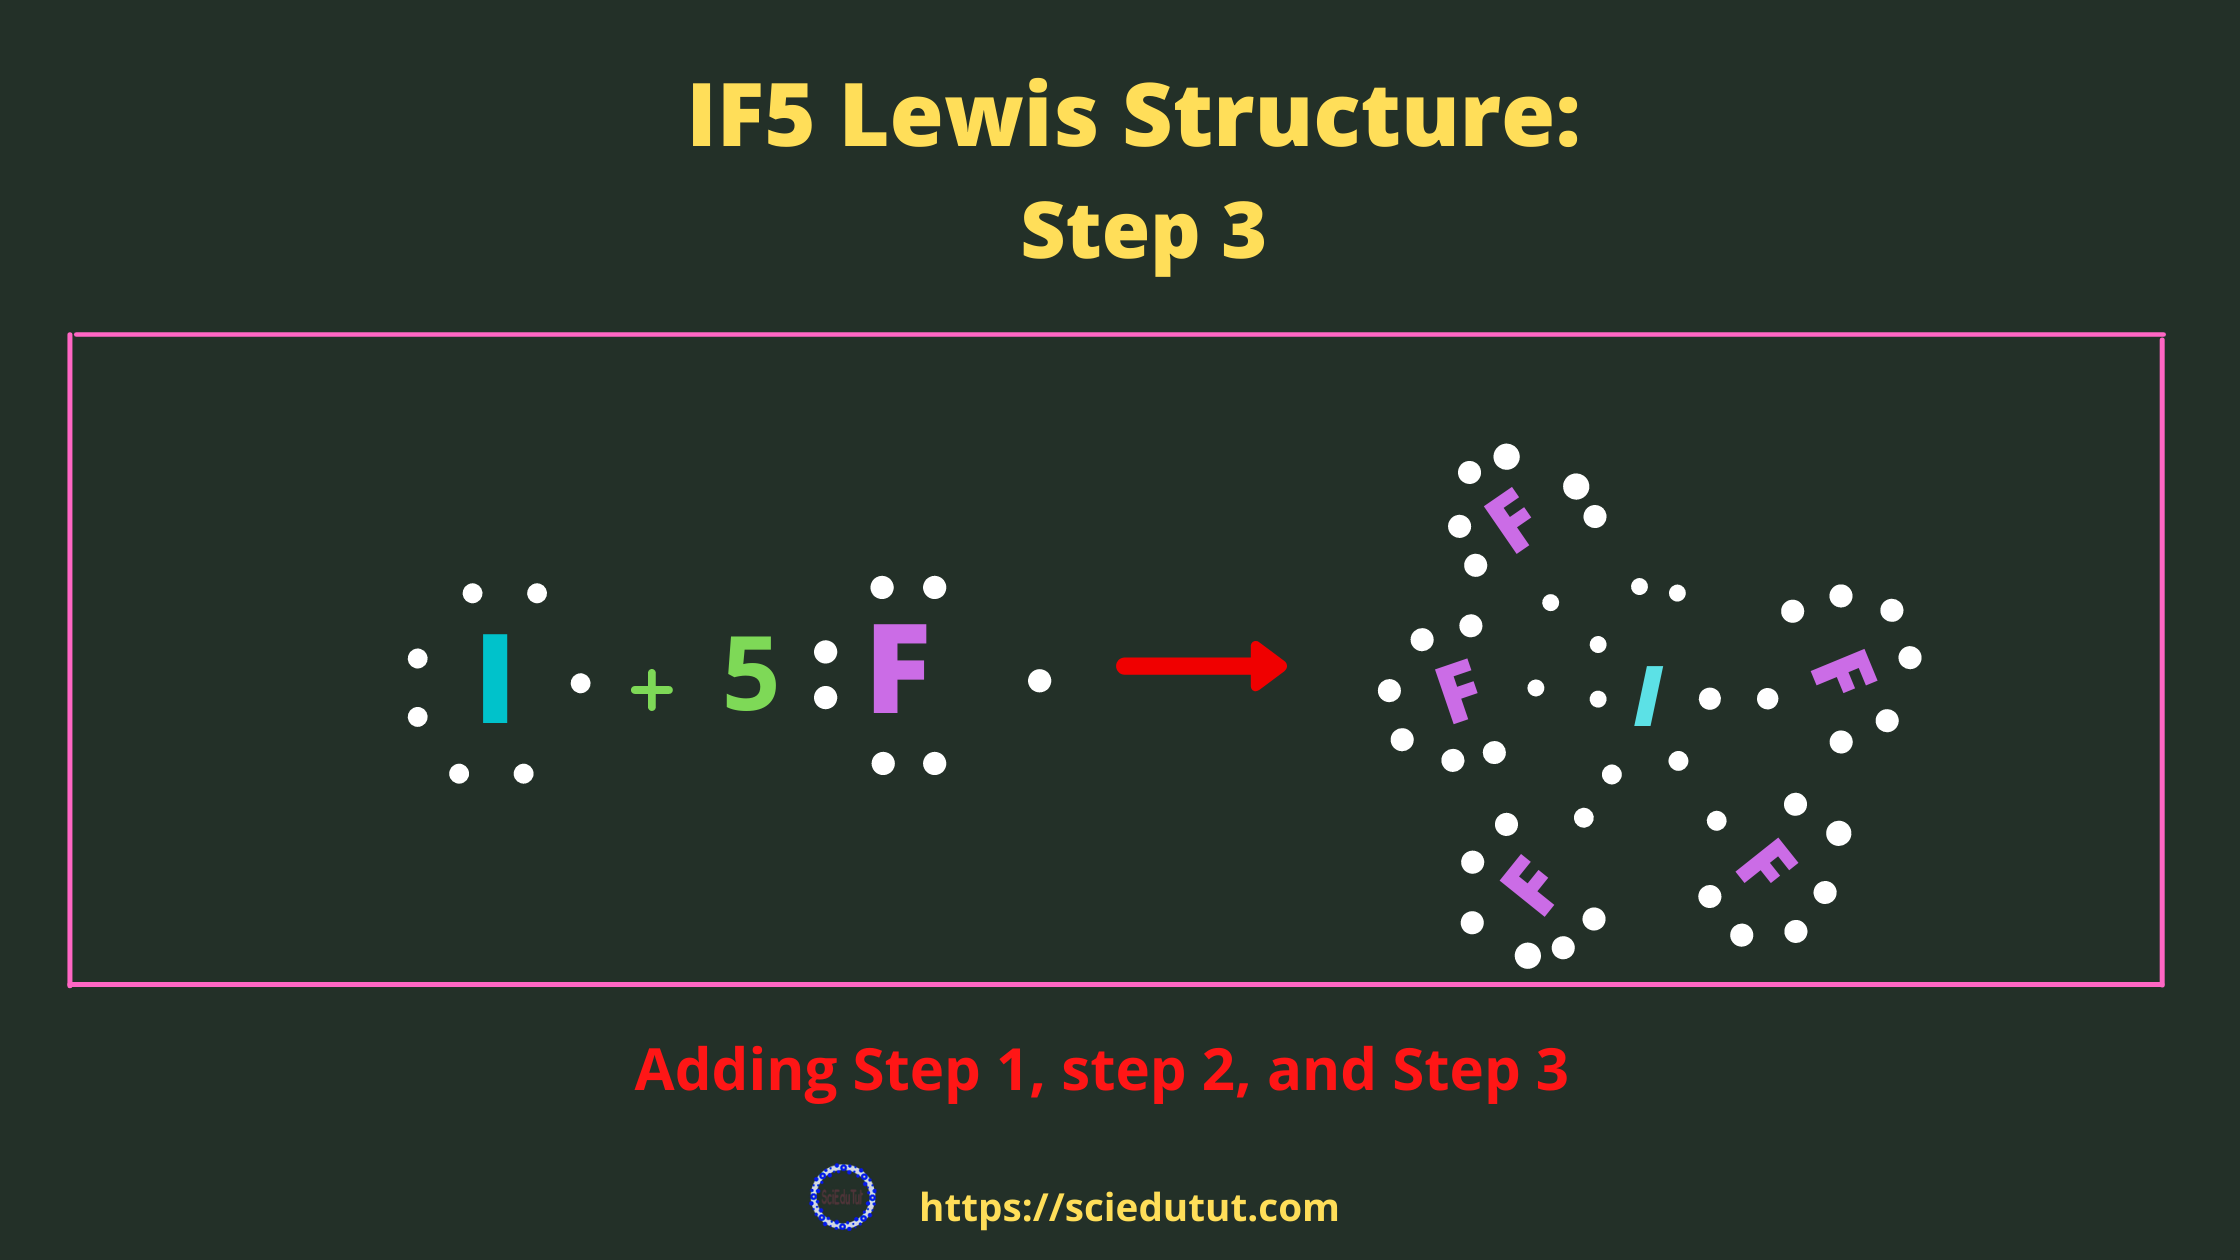 How to draw IF5 Lewis Structure?